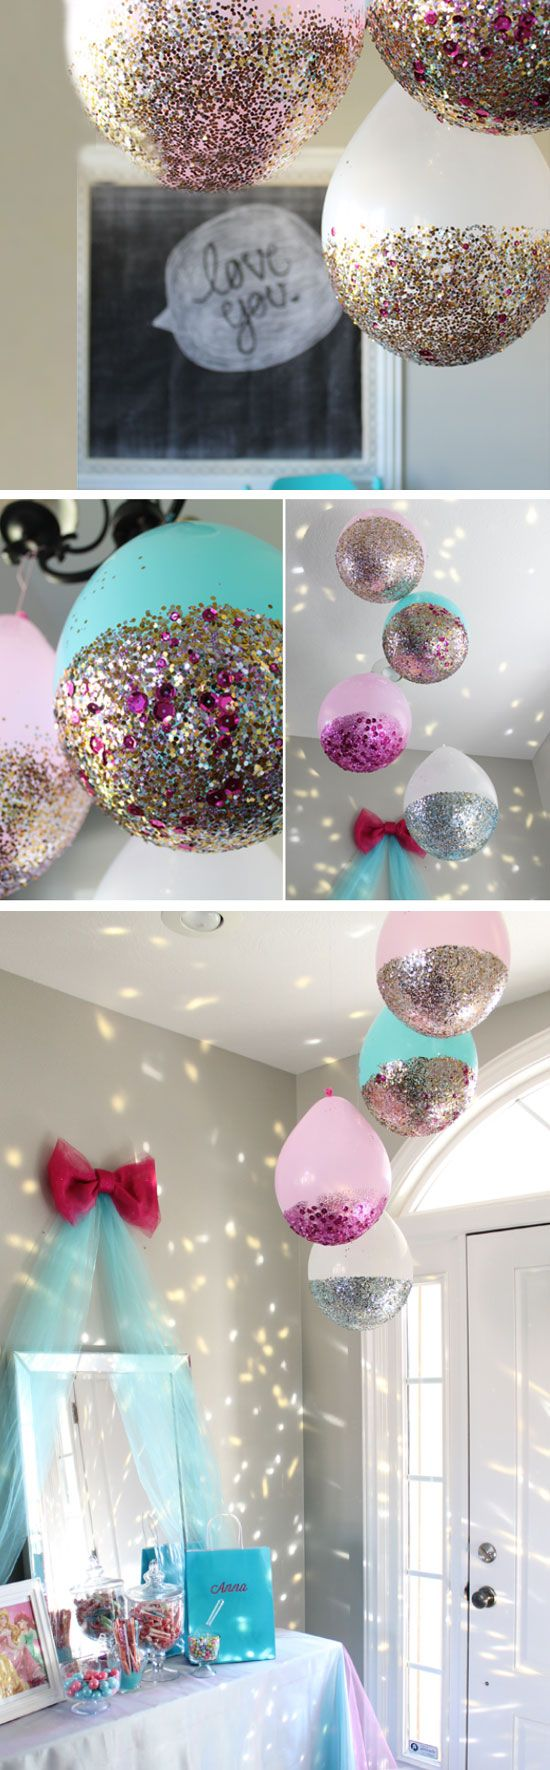 10 Amazing New Years Eve Party Ideas